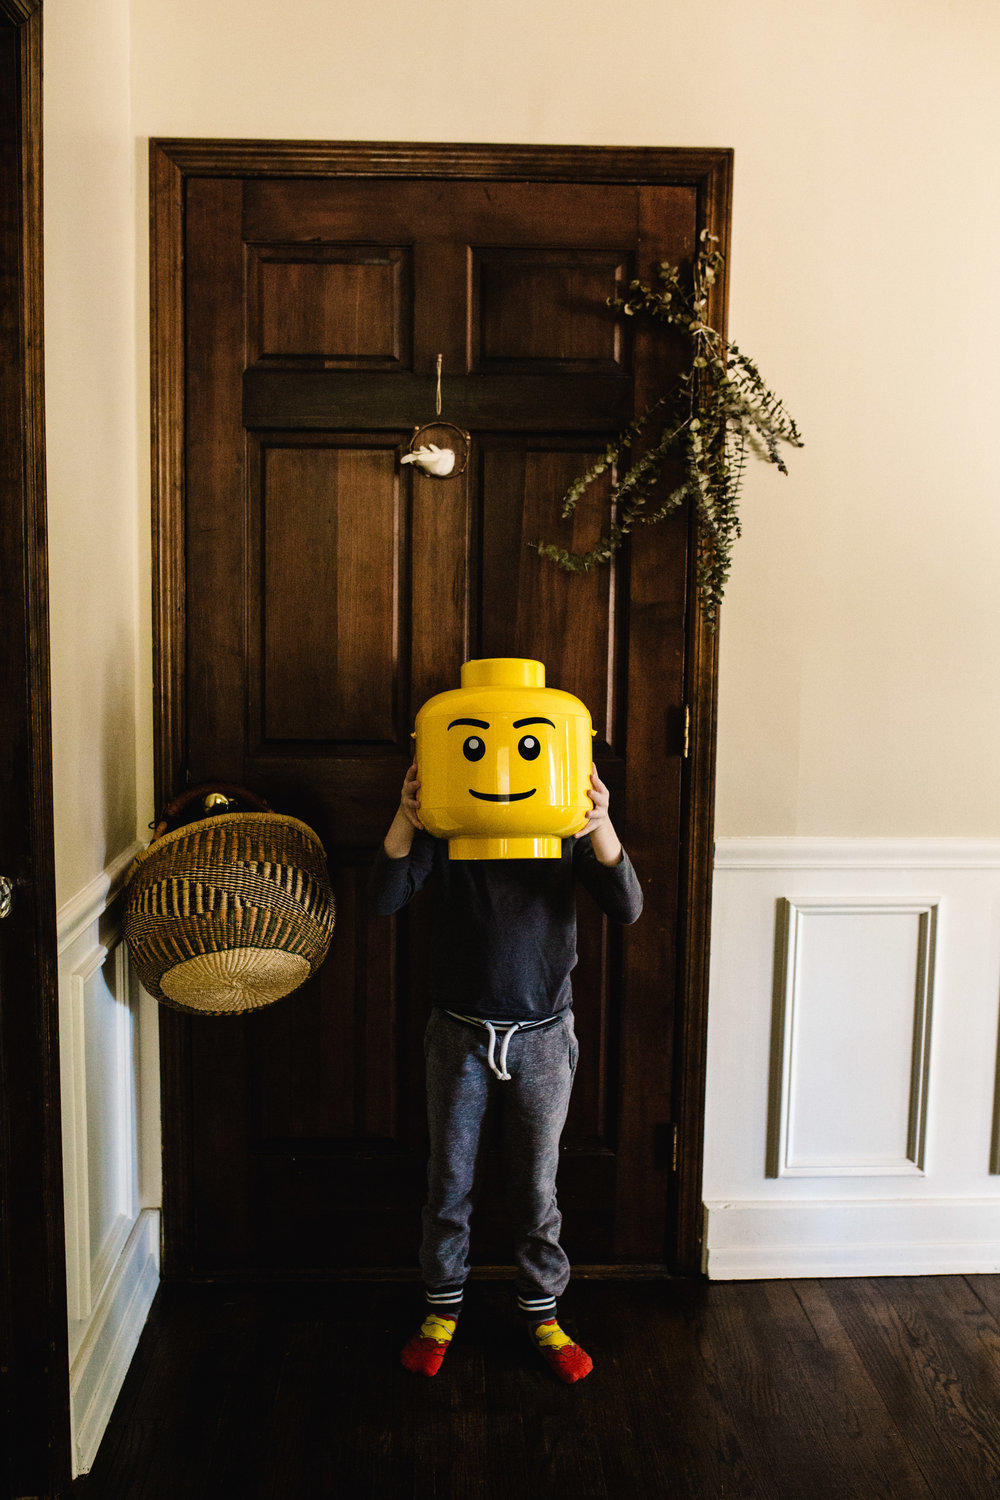 lego head | 365 project | Jennifer Tippett Photography